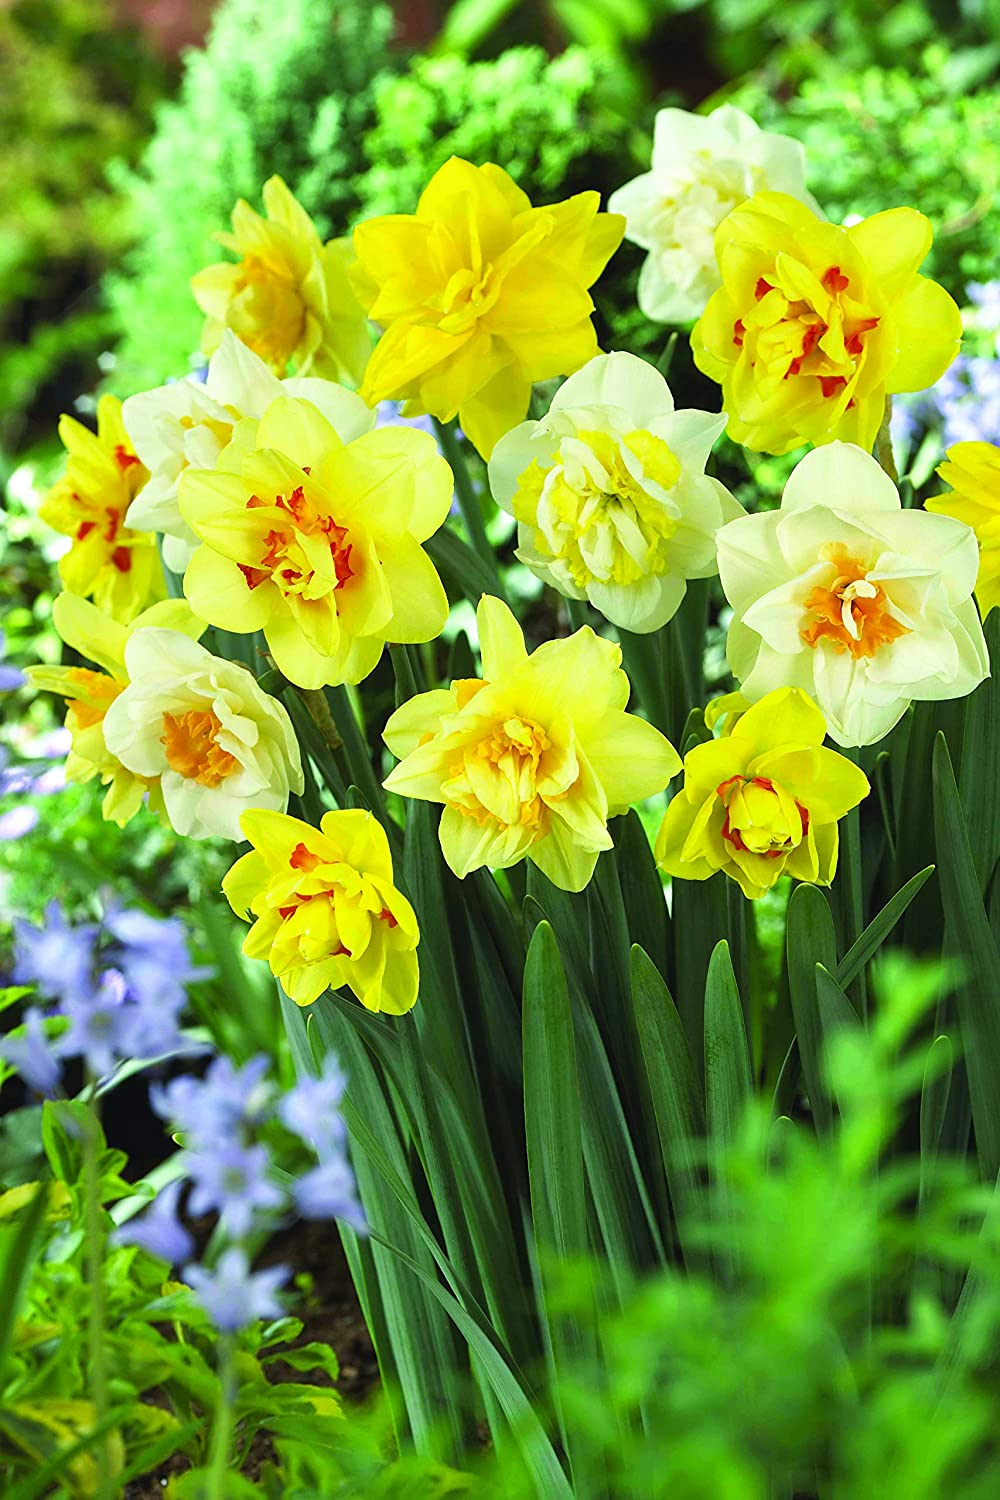 Burpee's 100 Days Daffodil - 25 Large Flower Bulbs | Yellow, Gold, and White V13408